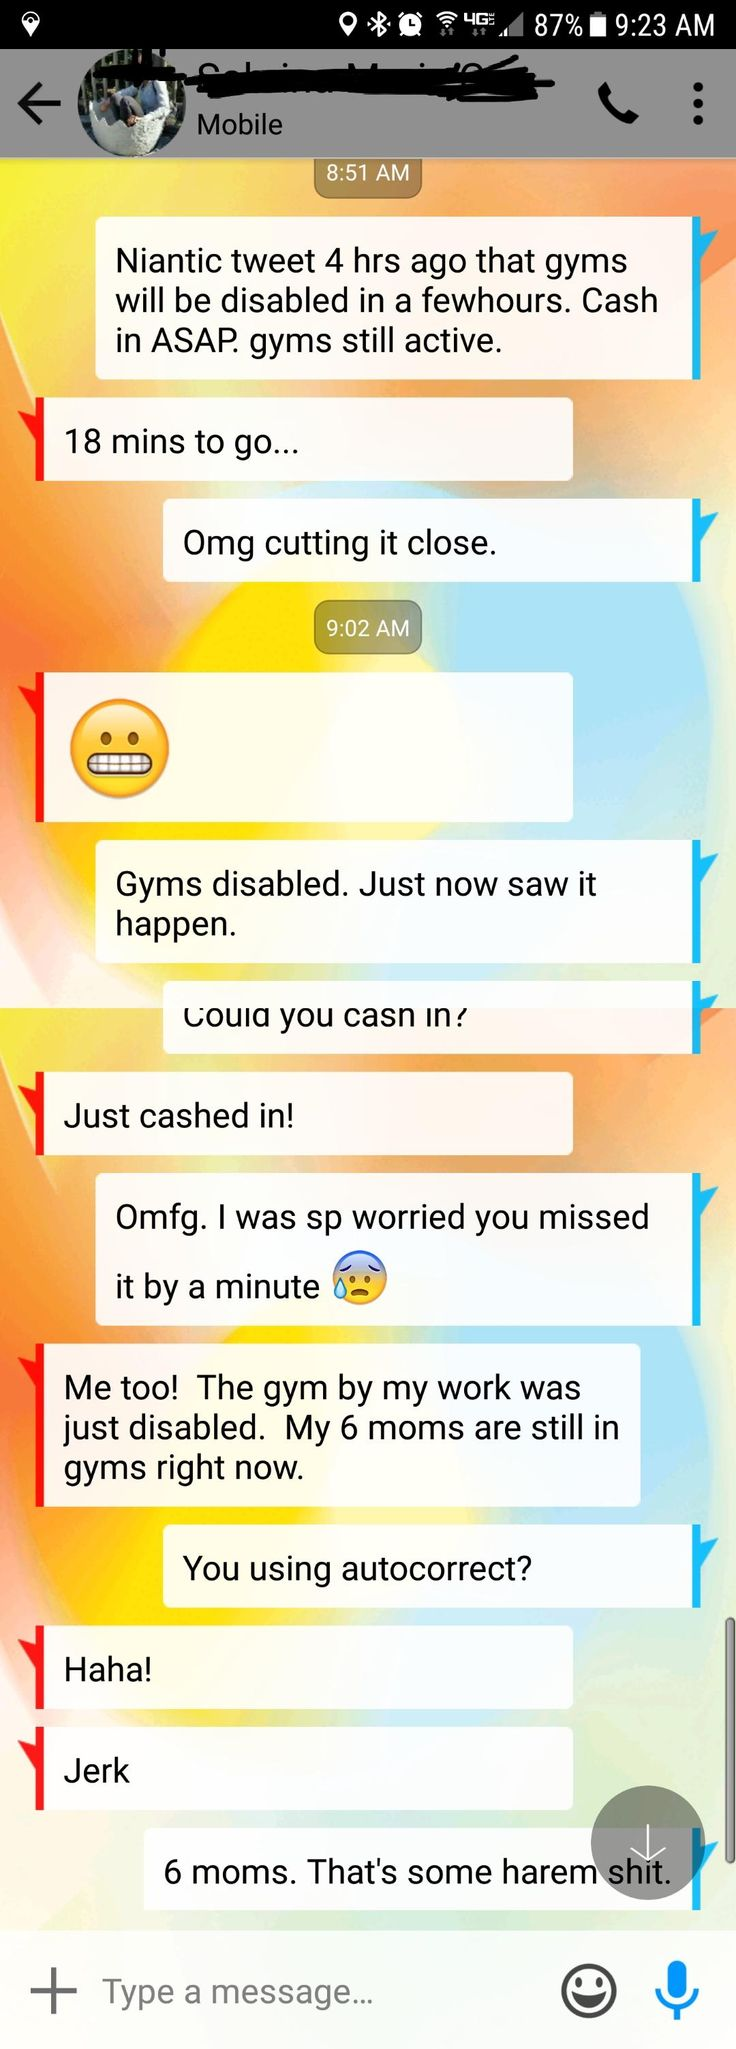 [Humor] 6 moms in gyms as they're about to be disabled